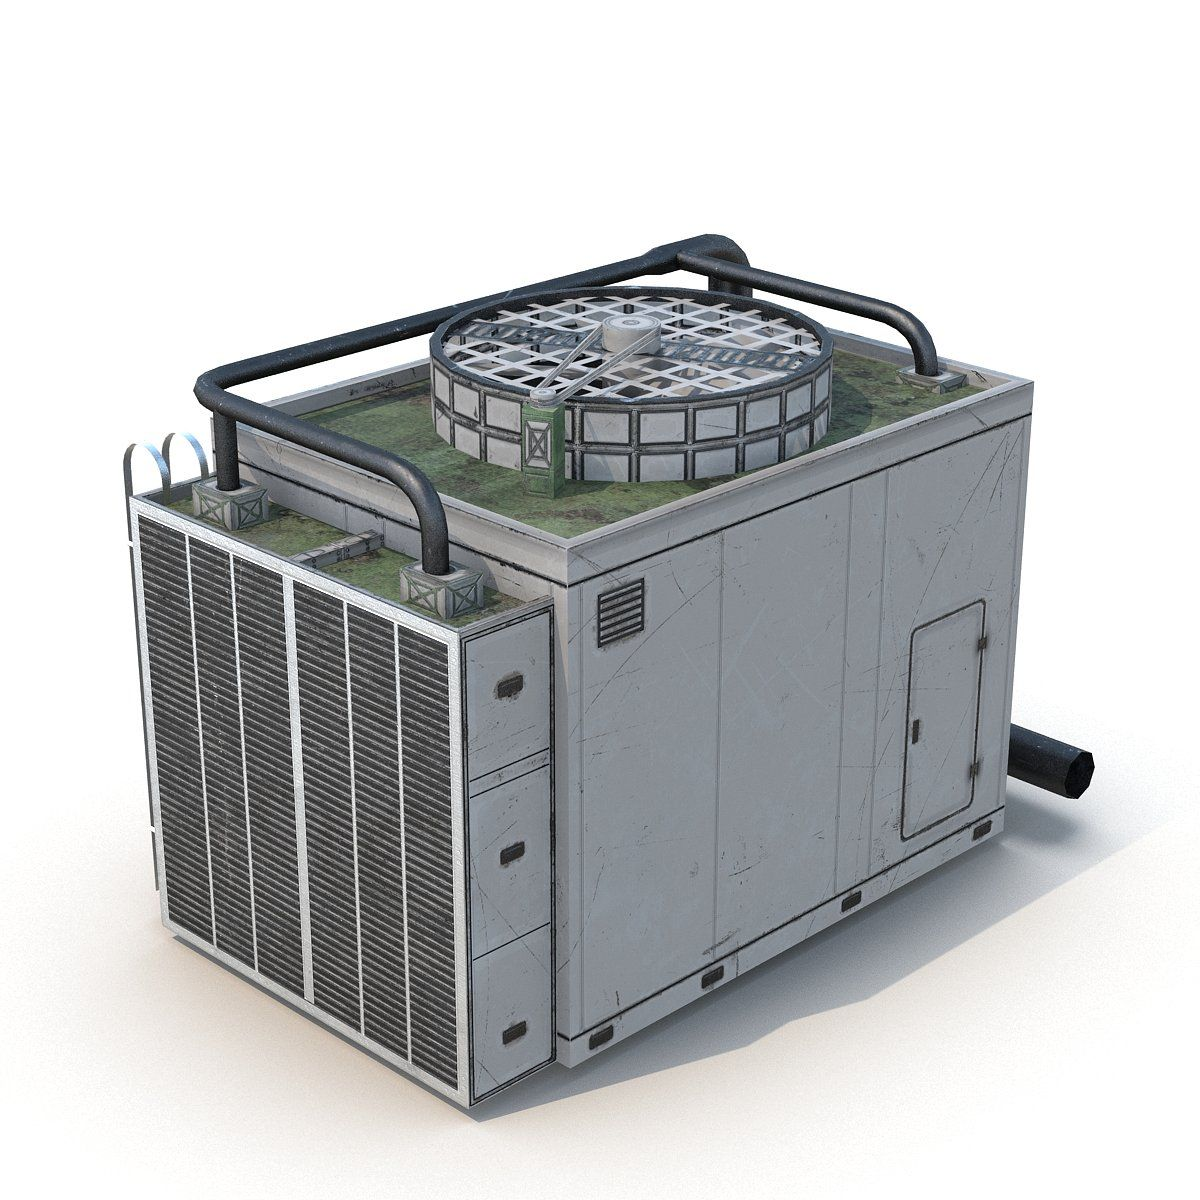 Rooftop Air Conditioner Unit Air conditioner units, The